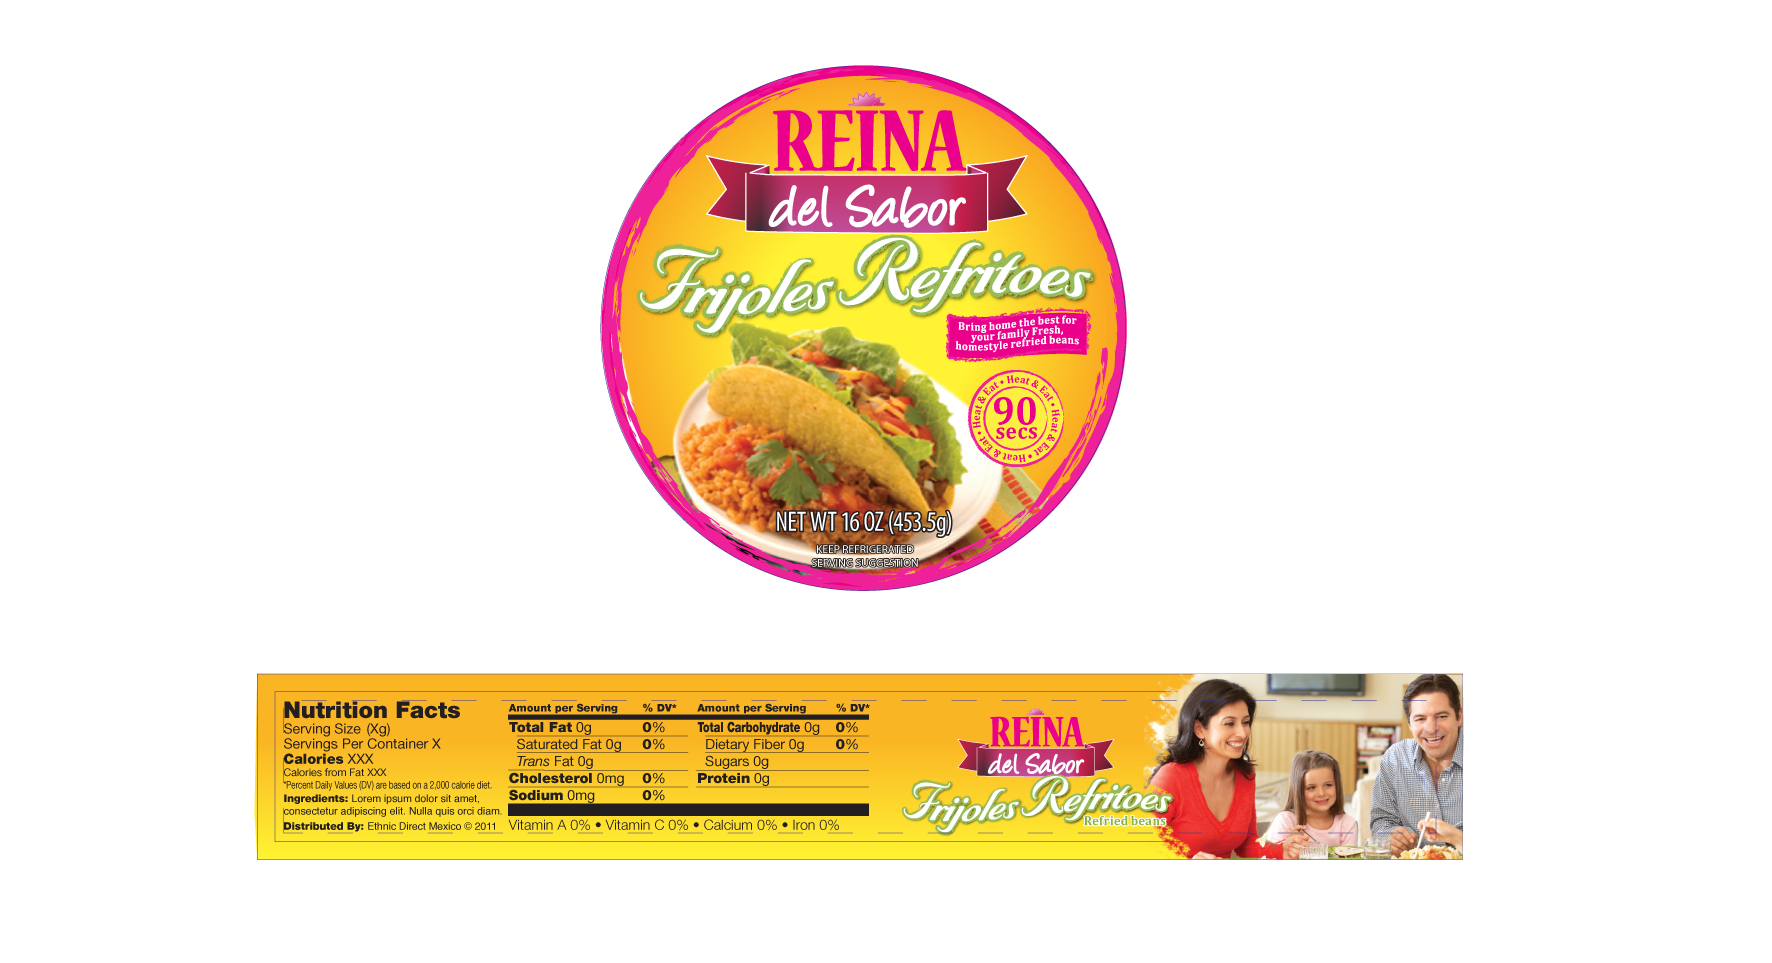 Reina del Sabor needs packaging labels